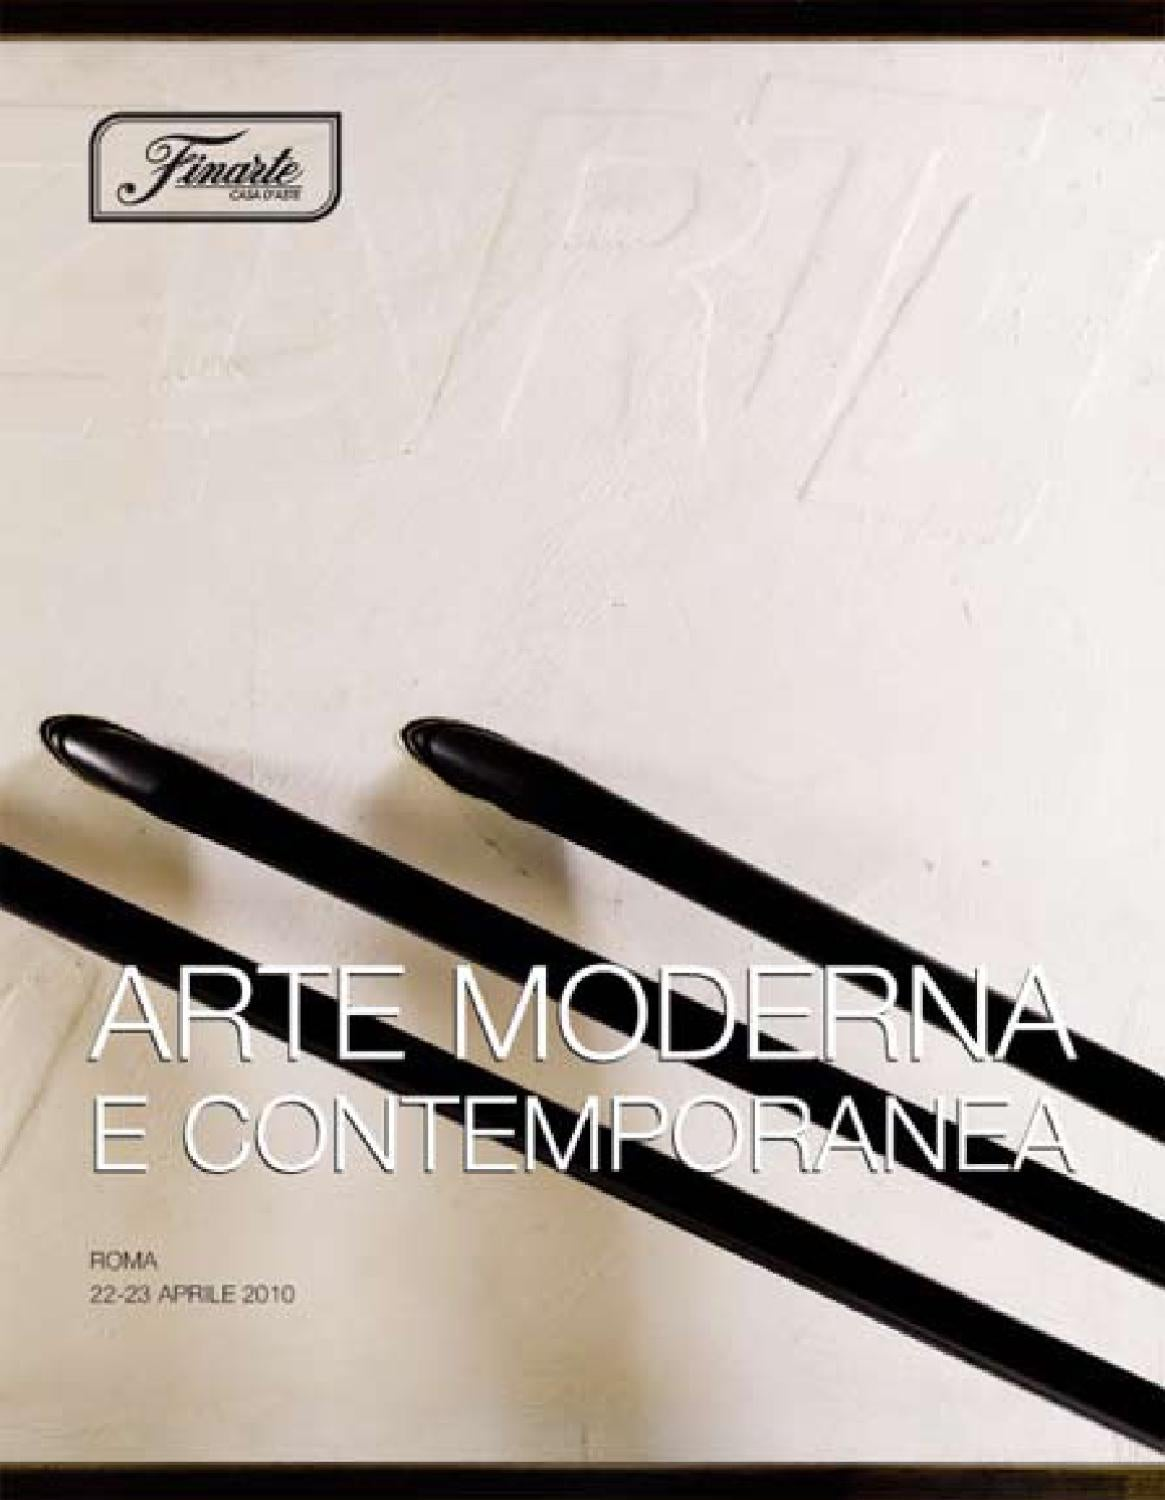 Arte moderna e contemporanea by web finarte - issuu